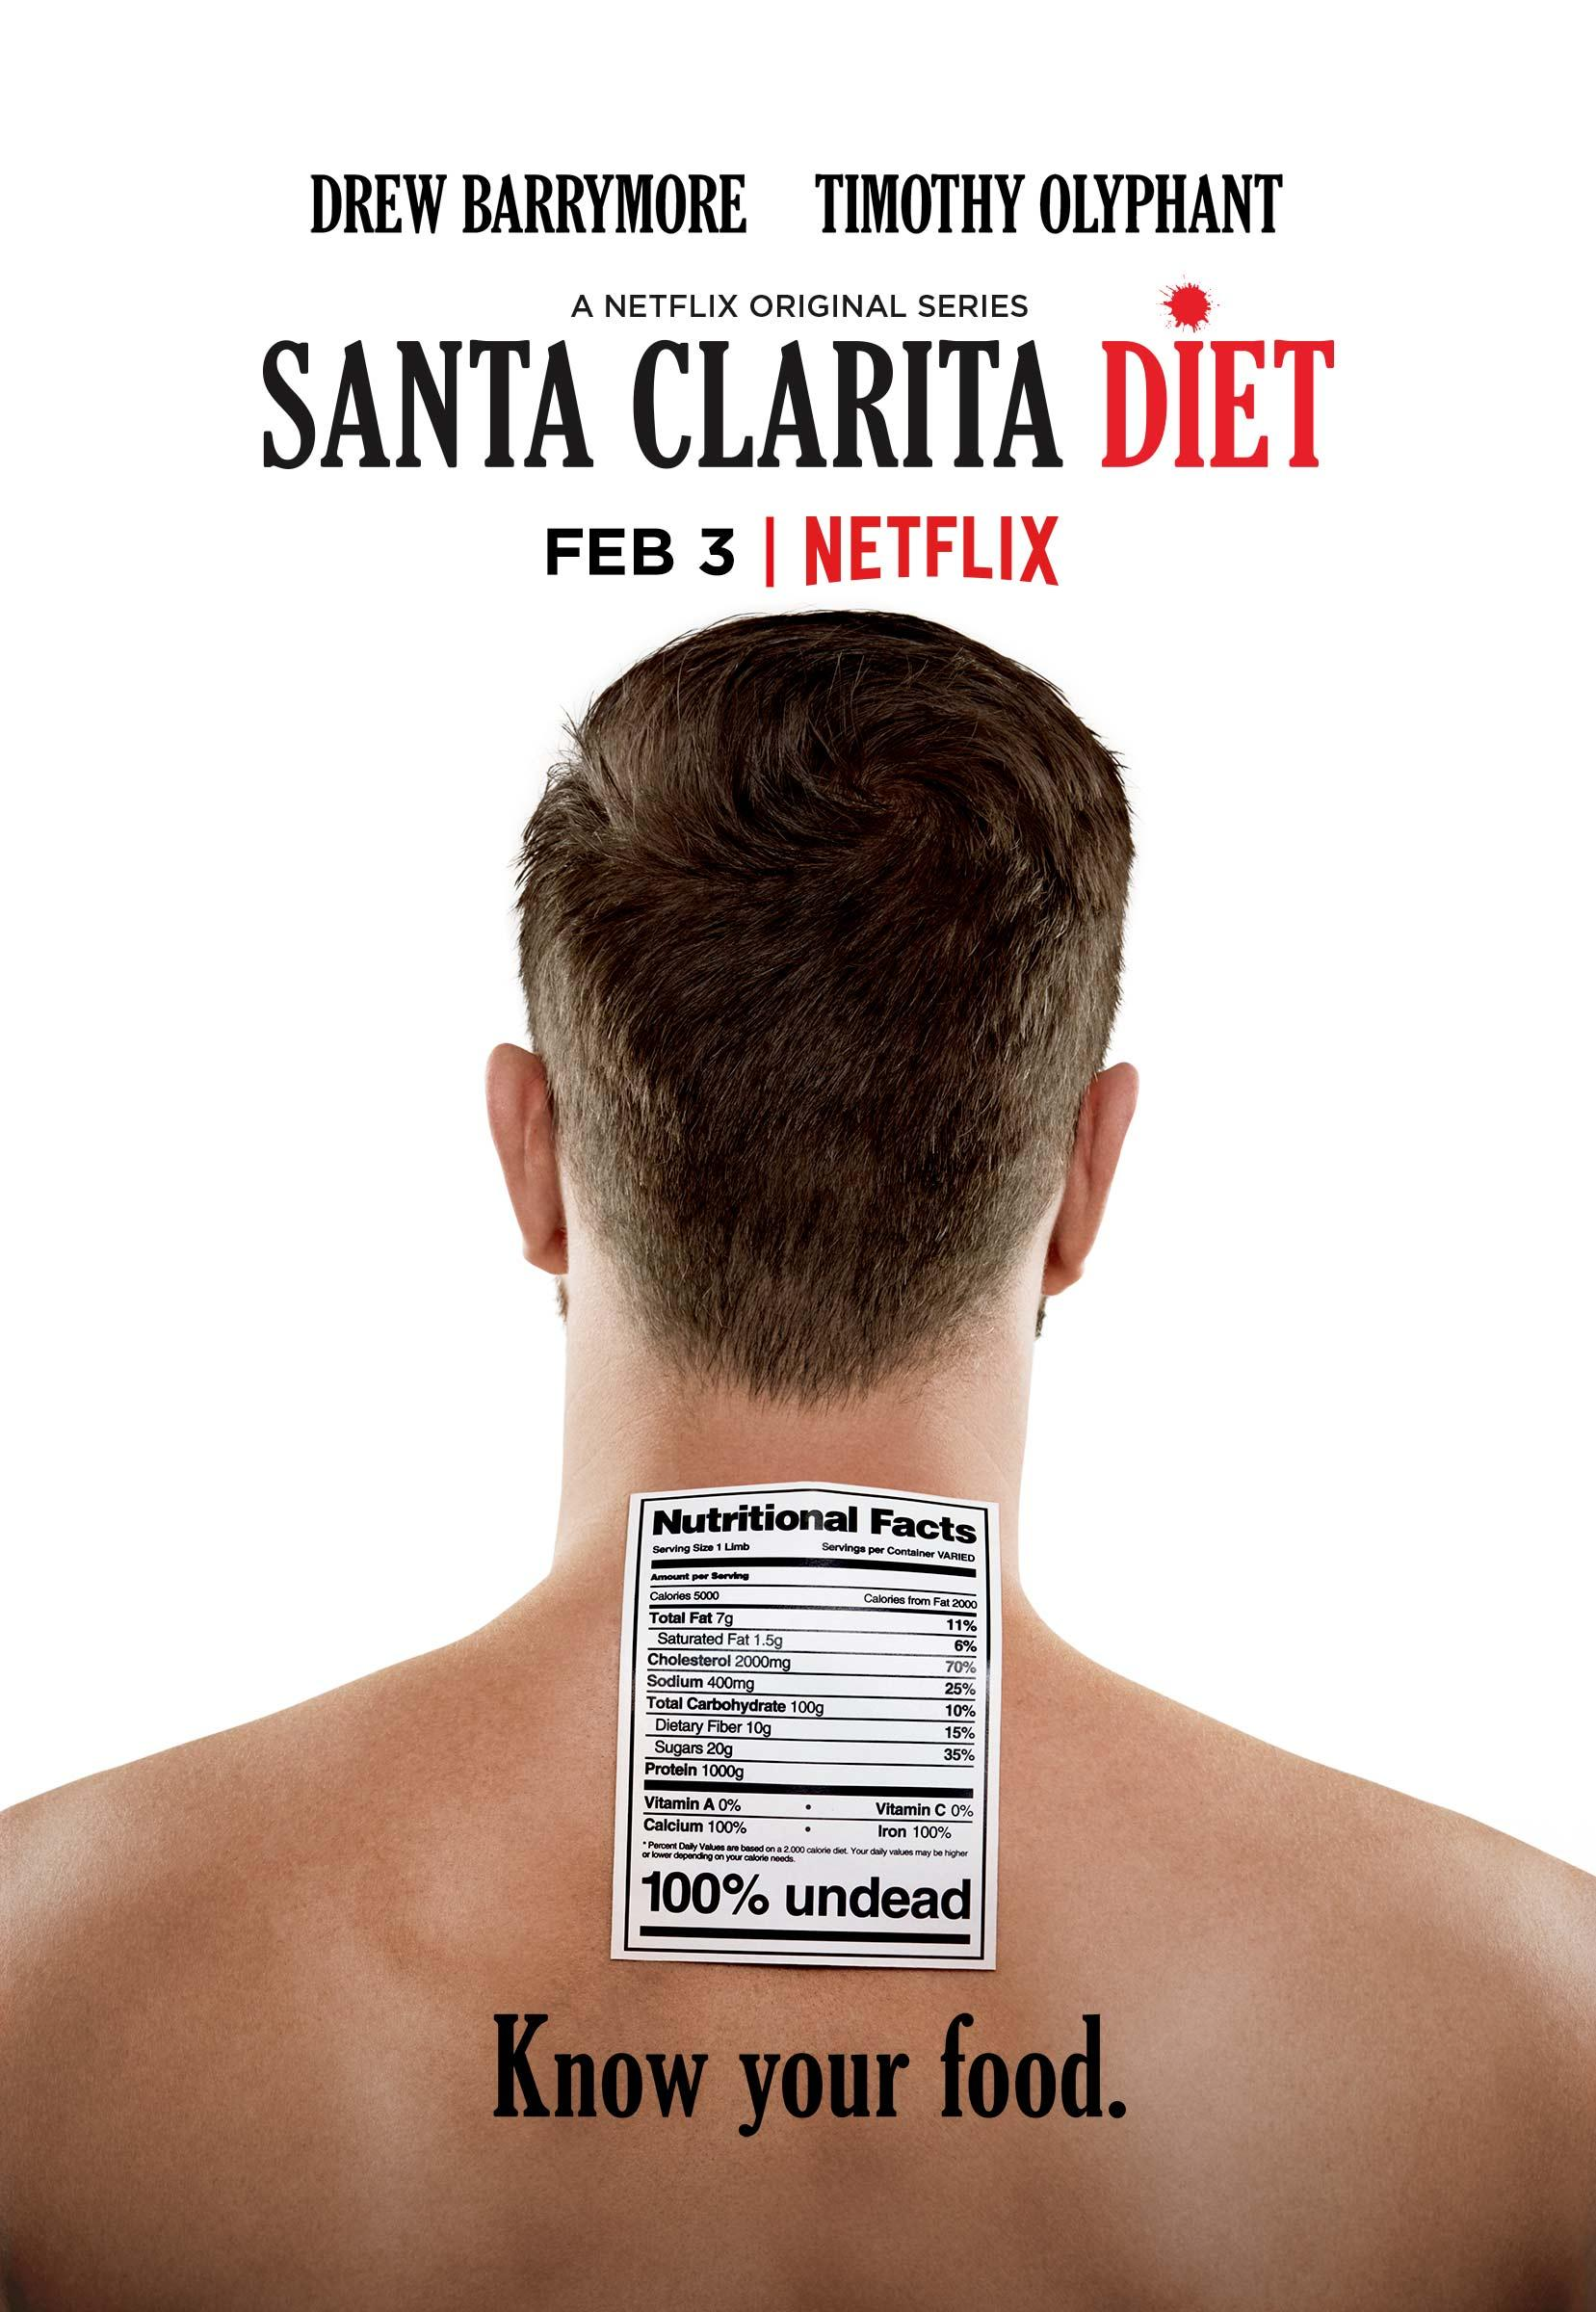 Santa Clarita Diet Outdoor Ad - Know your food